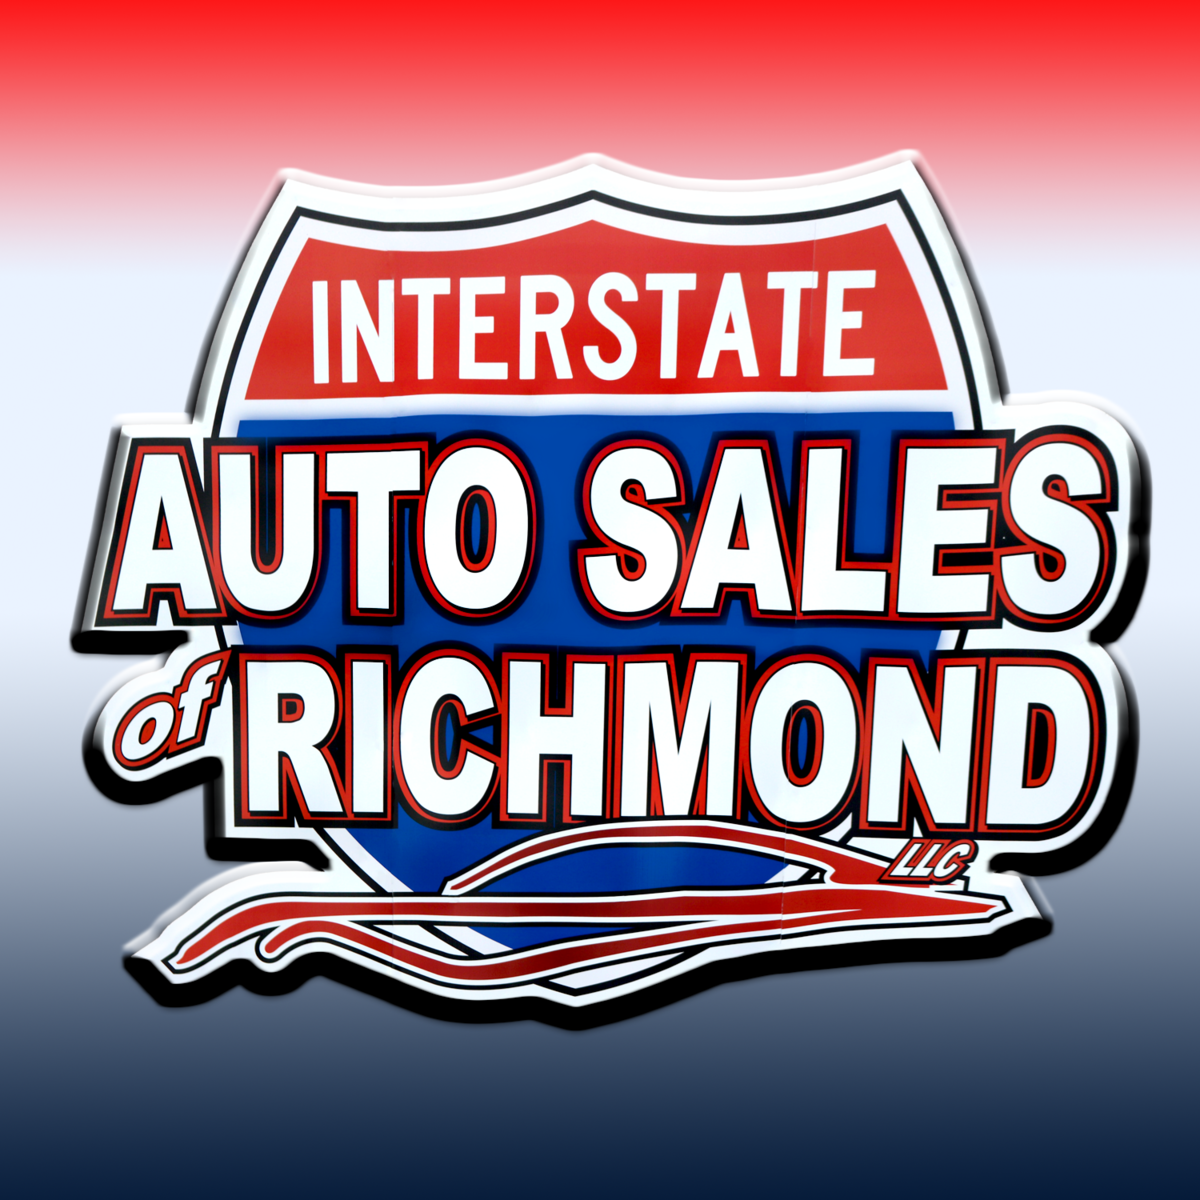 Interstate Auto Sales Of Richmond, LLC